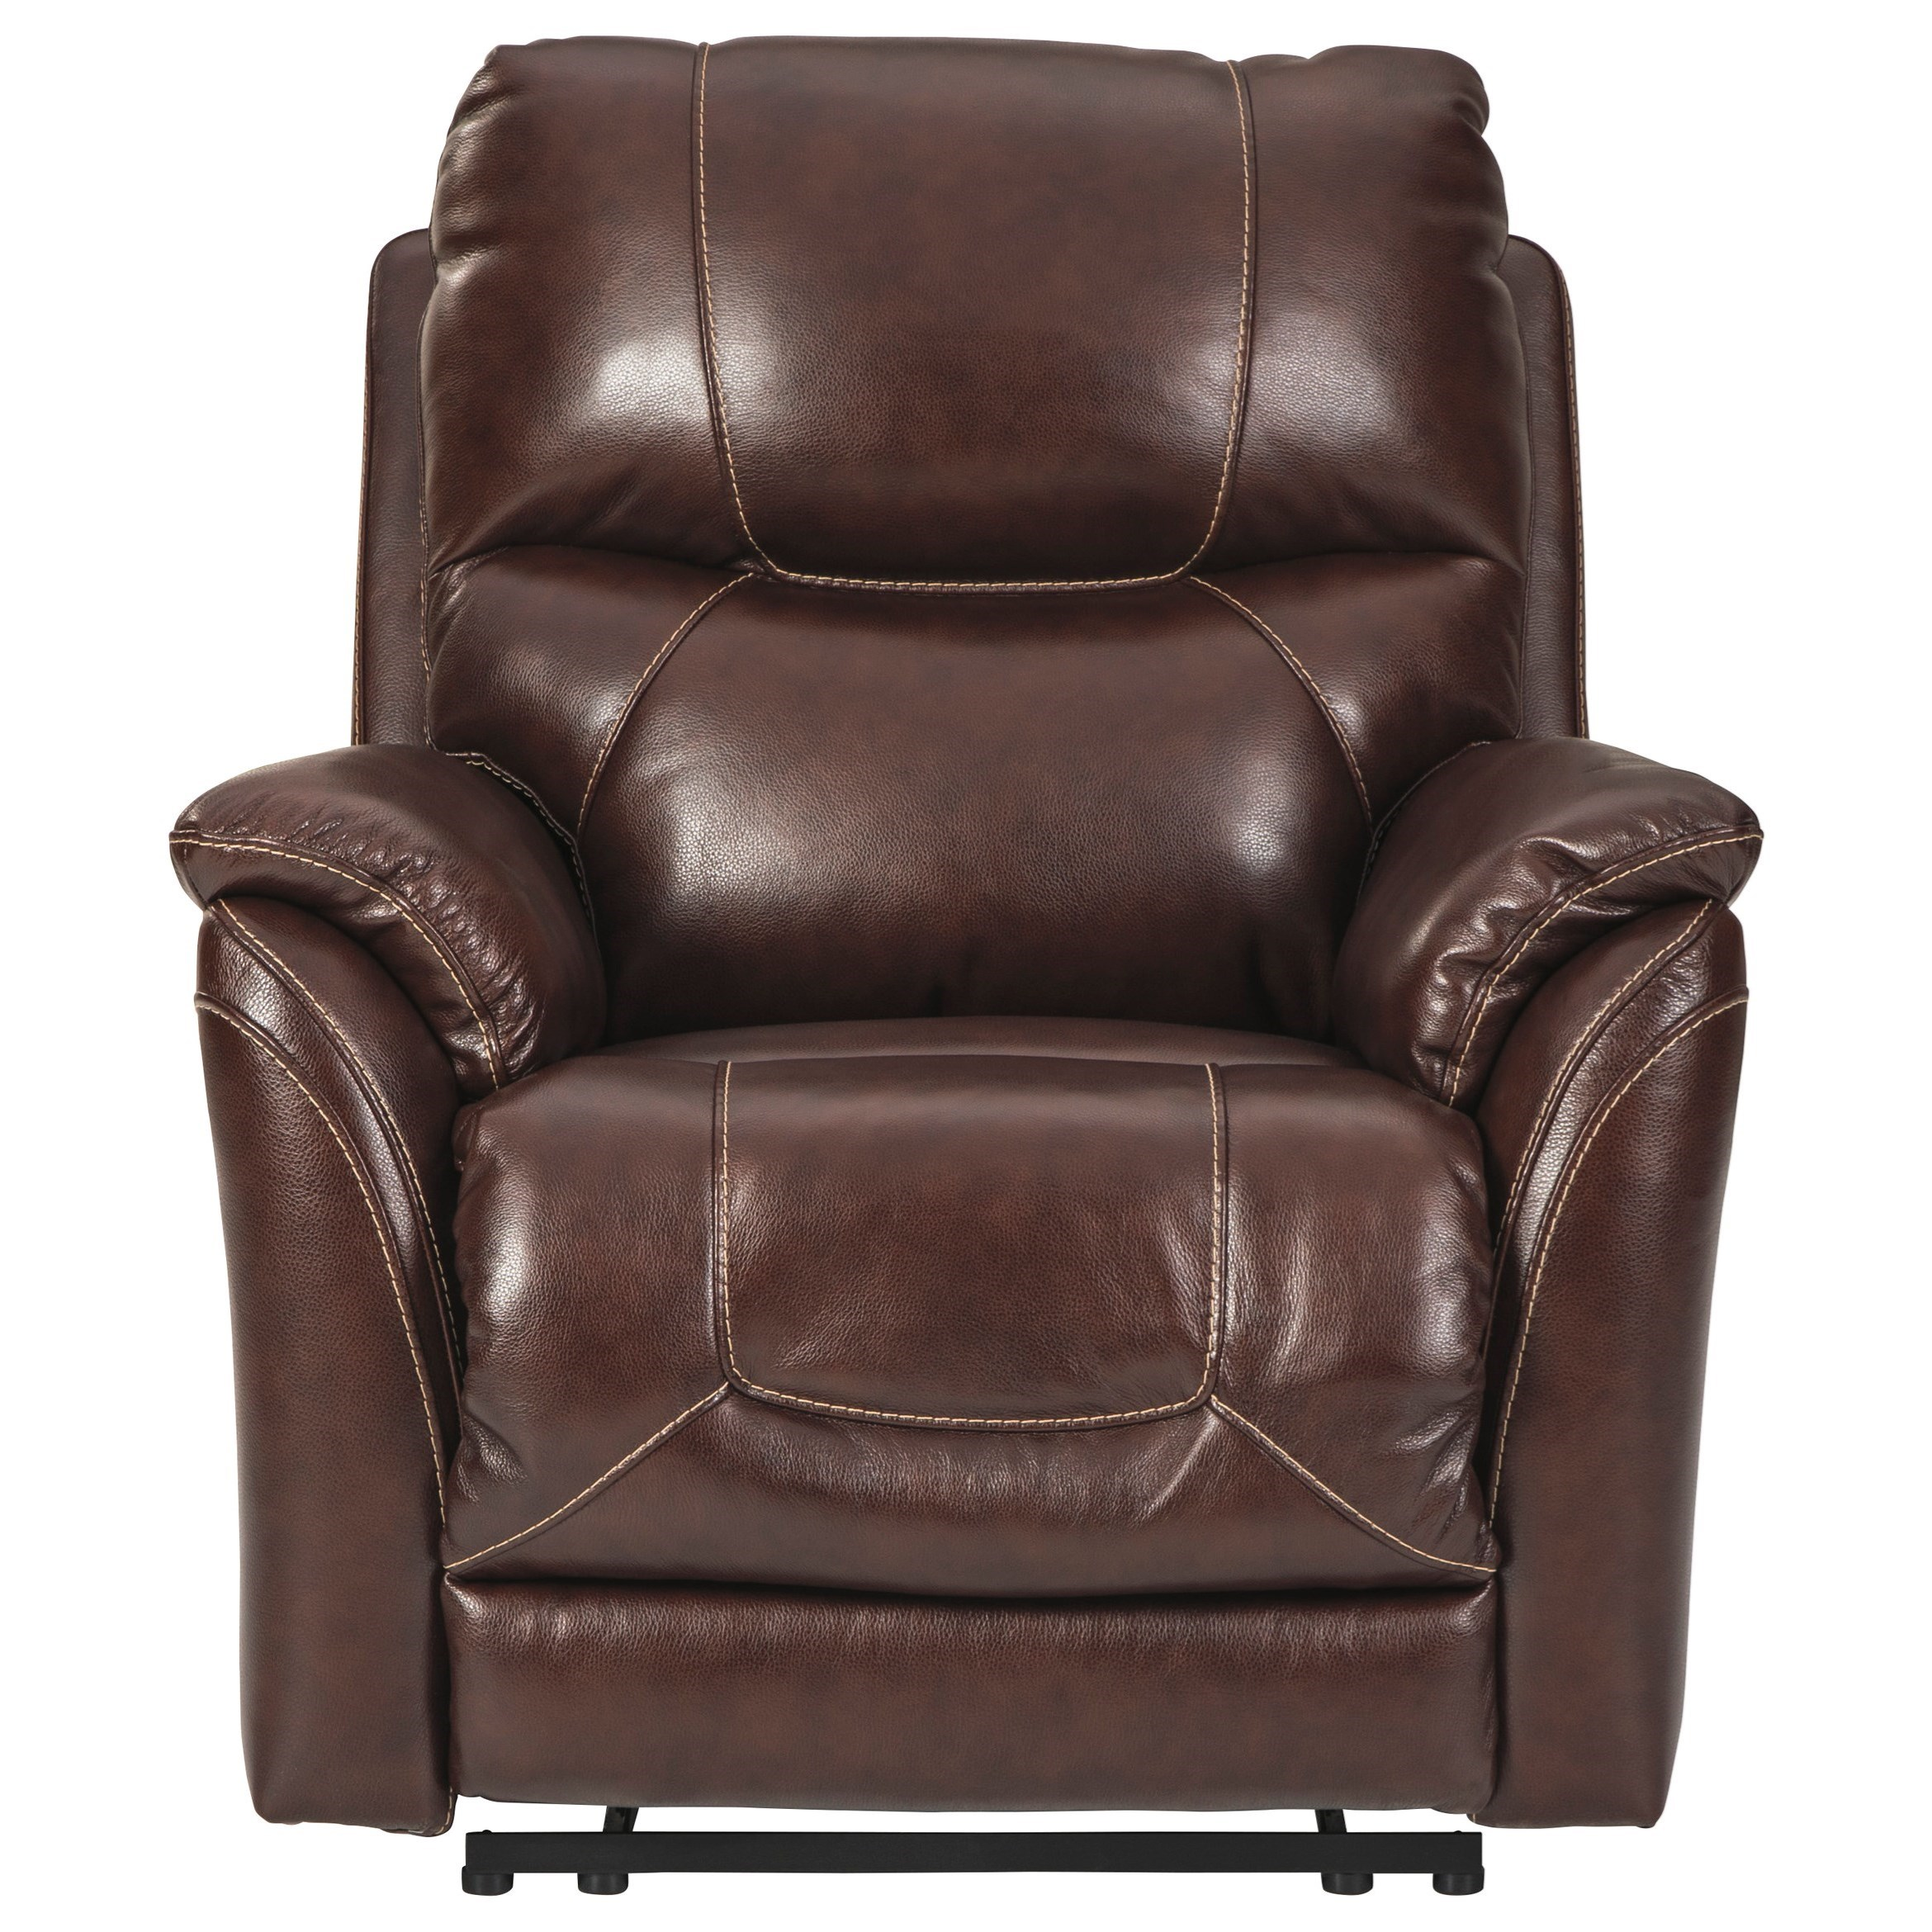 Dellington Power Recliner with Adjustable Headrest by Signature Design by Ashley at Value City Furniture